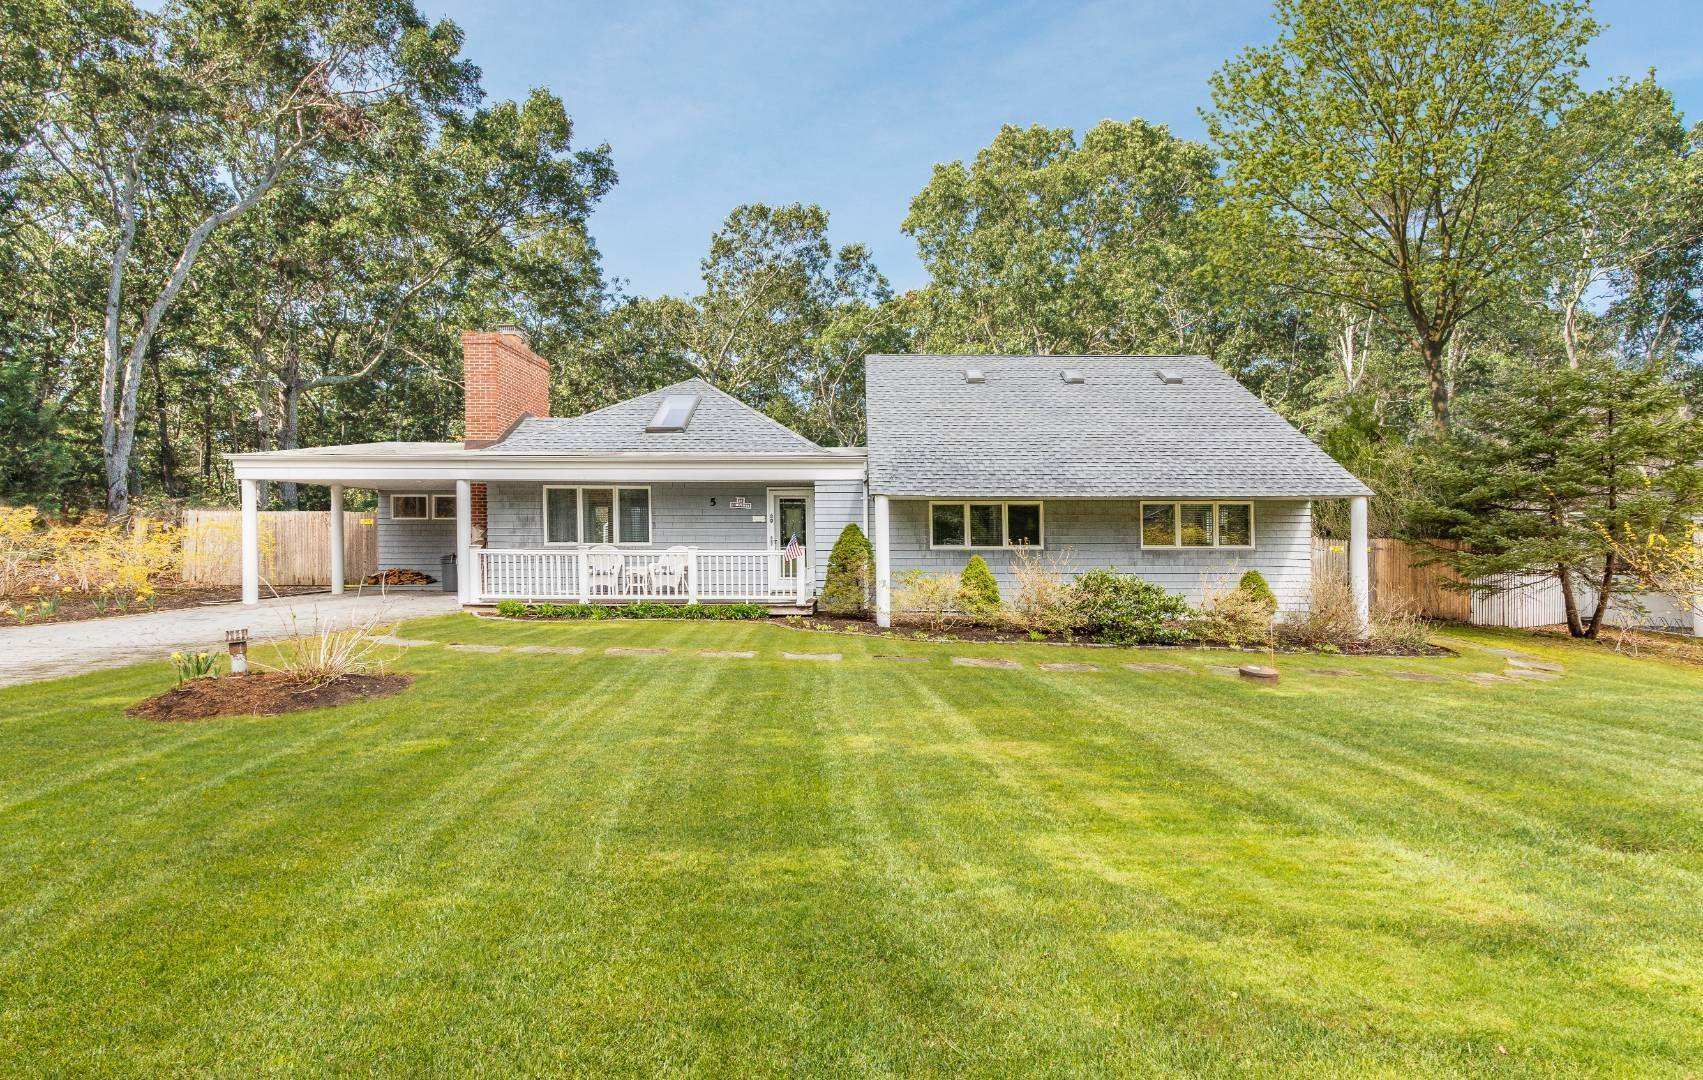 Single Family Home for Sale at Wainscott Comfy Beach Home 5 Clyden Road, Wainscott, NY 11975